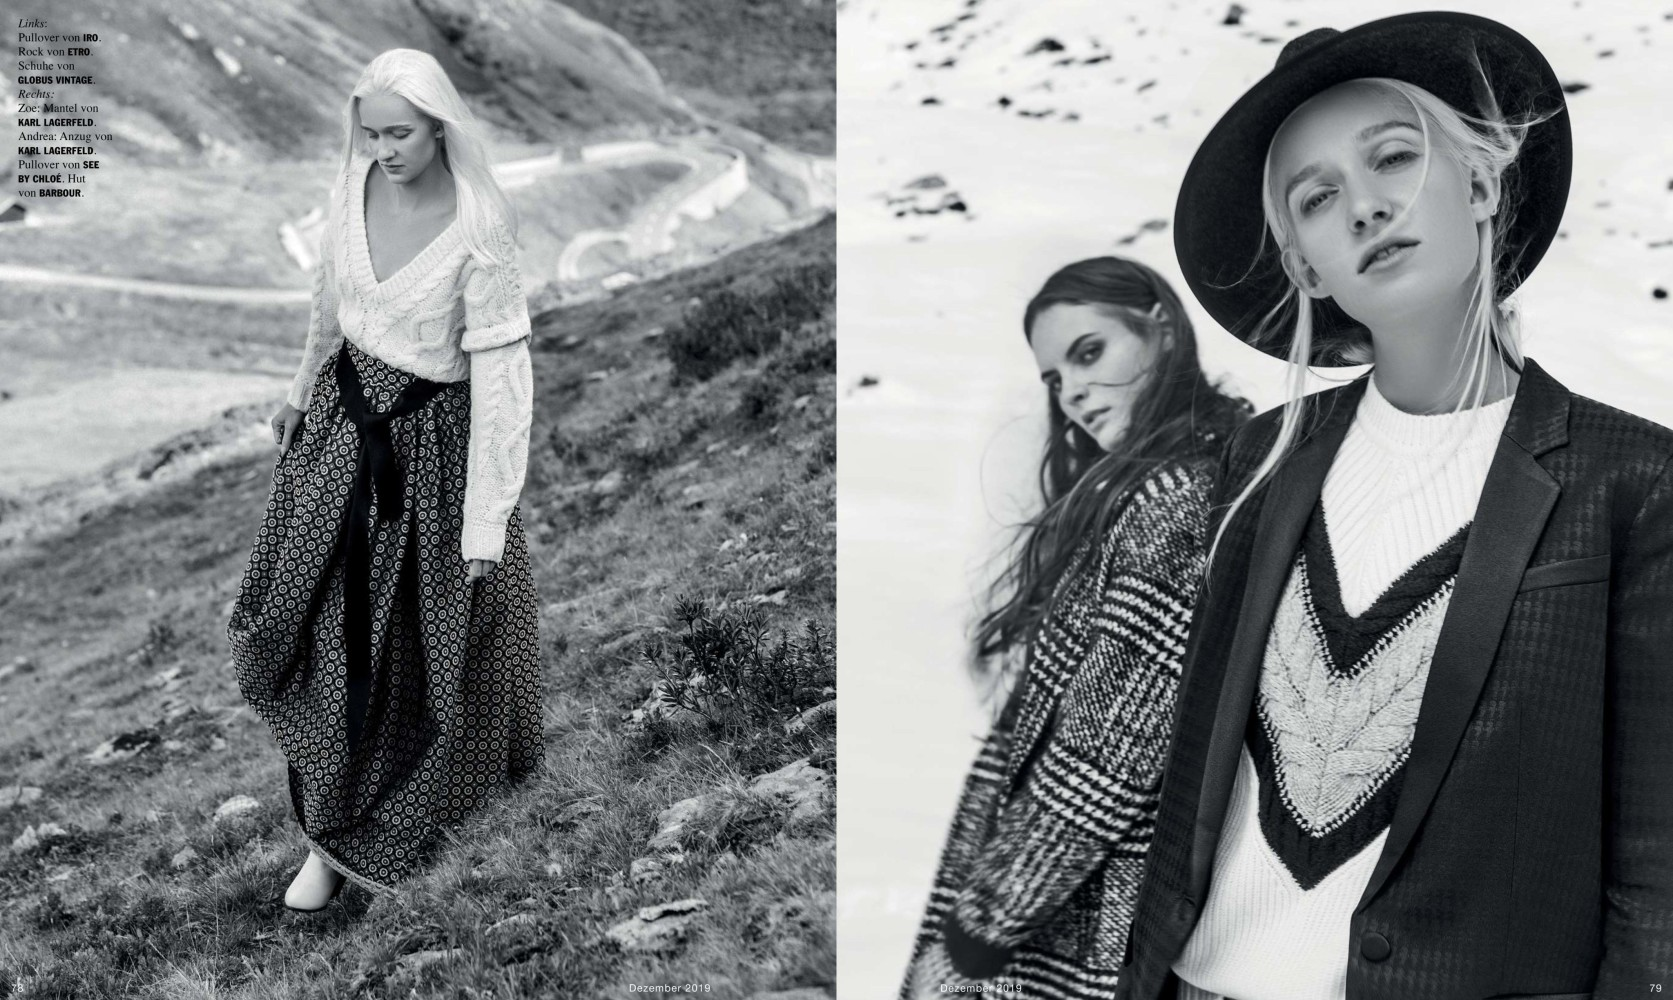 ZOE B. & ANDREA J. FOR FACES MAG